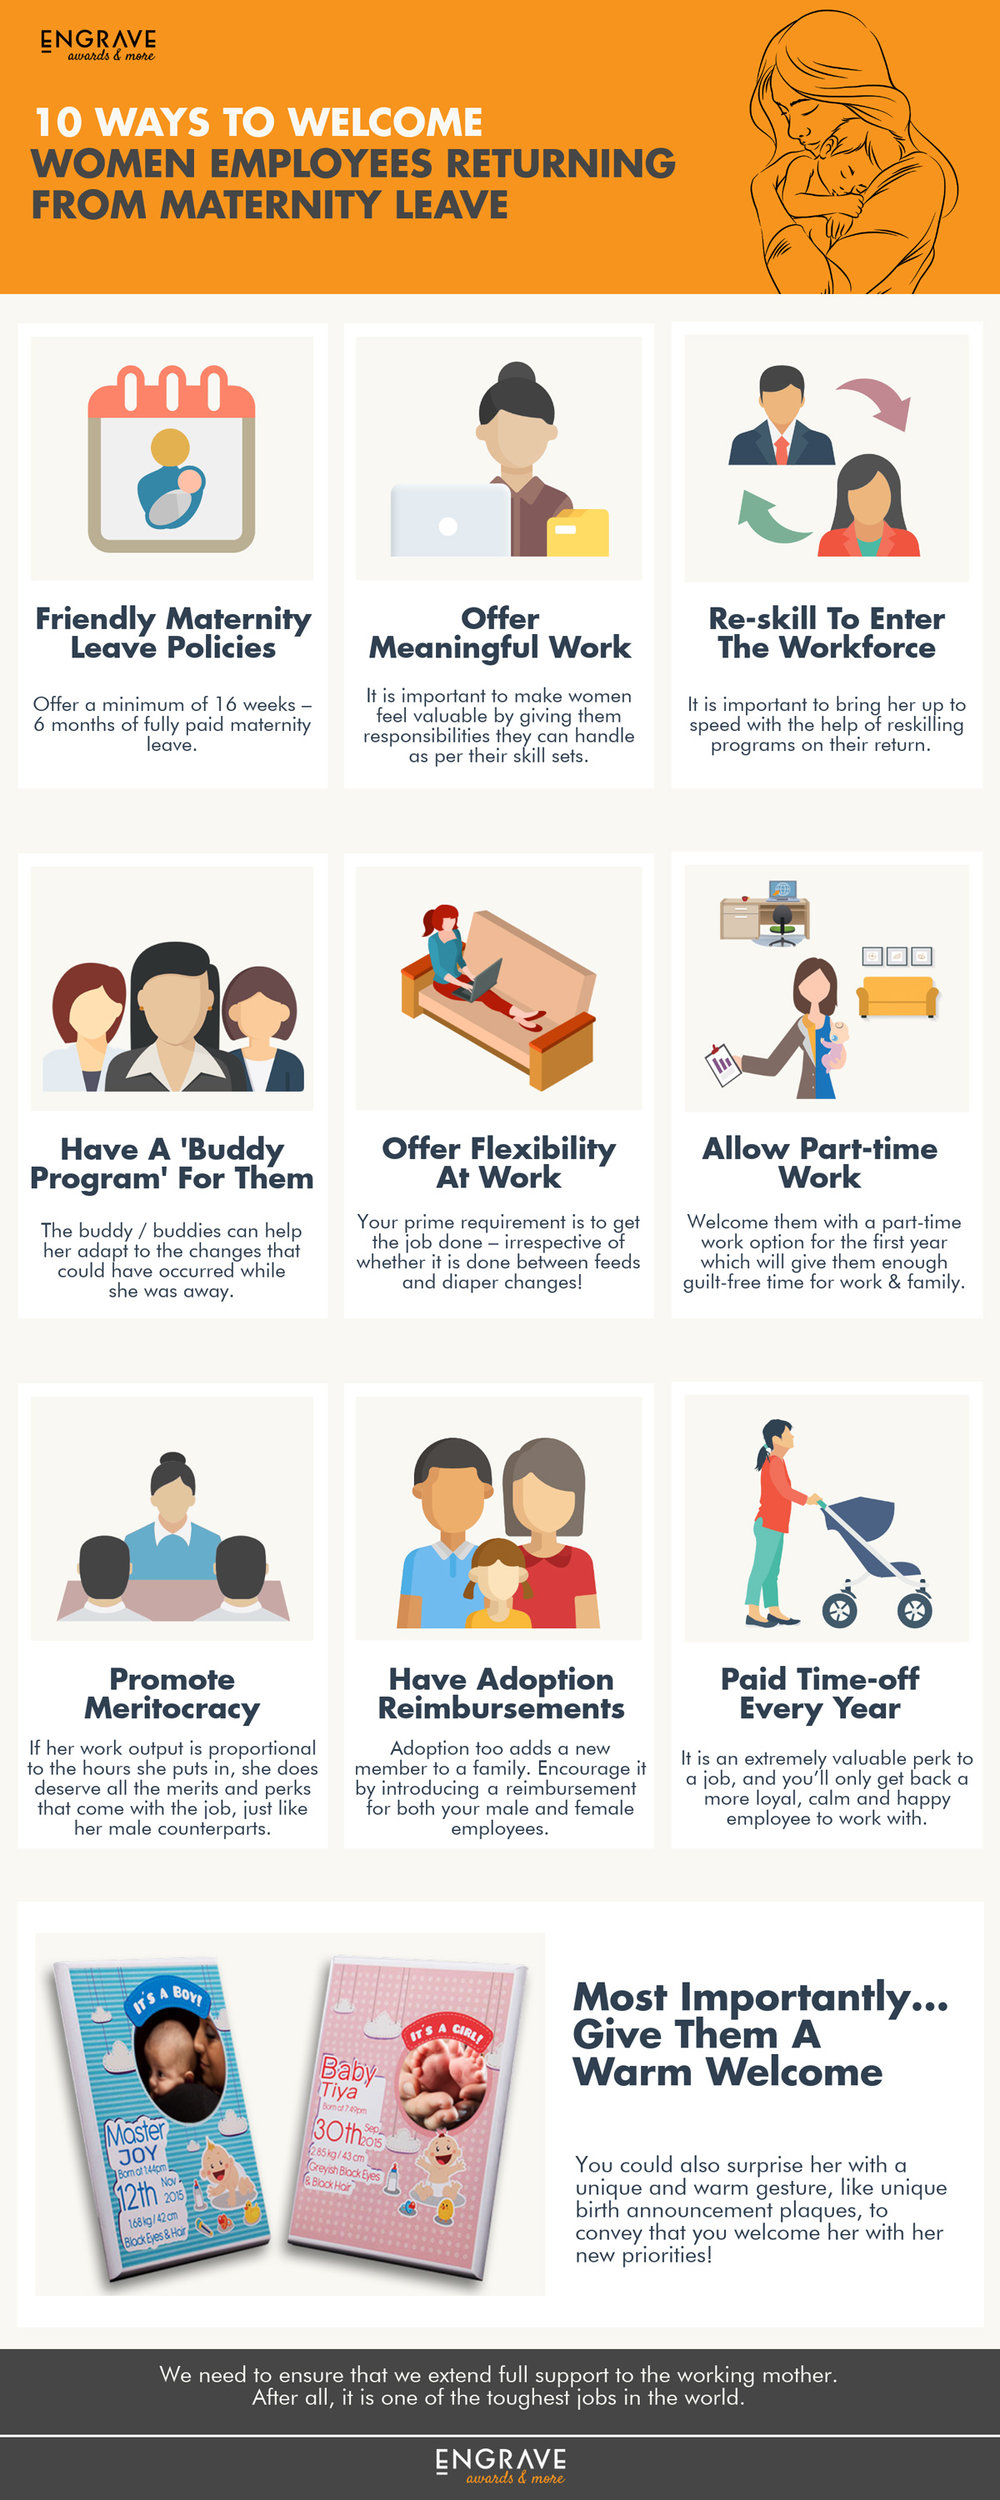 10-ways-to-welcome-women-from-maternity-leave.jpg